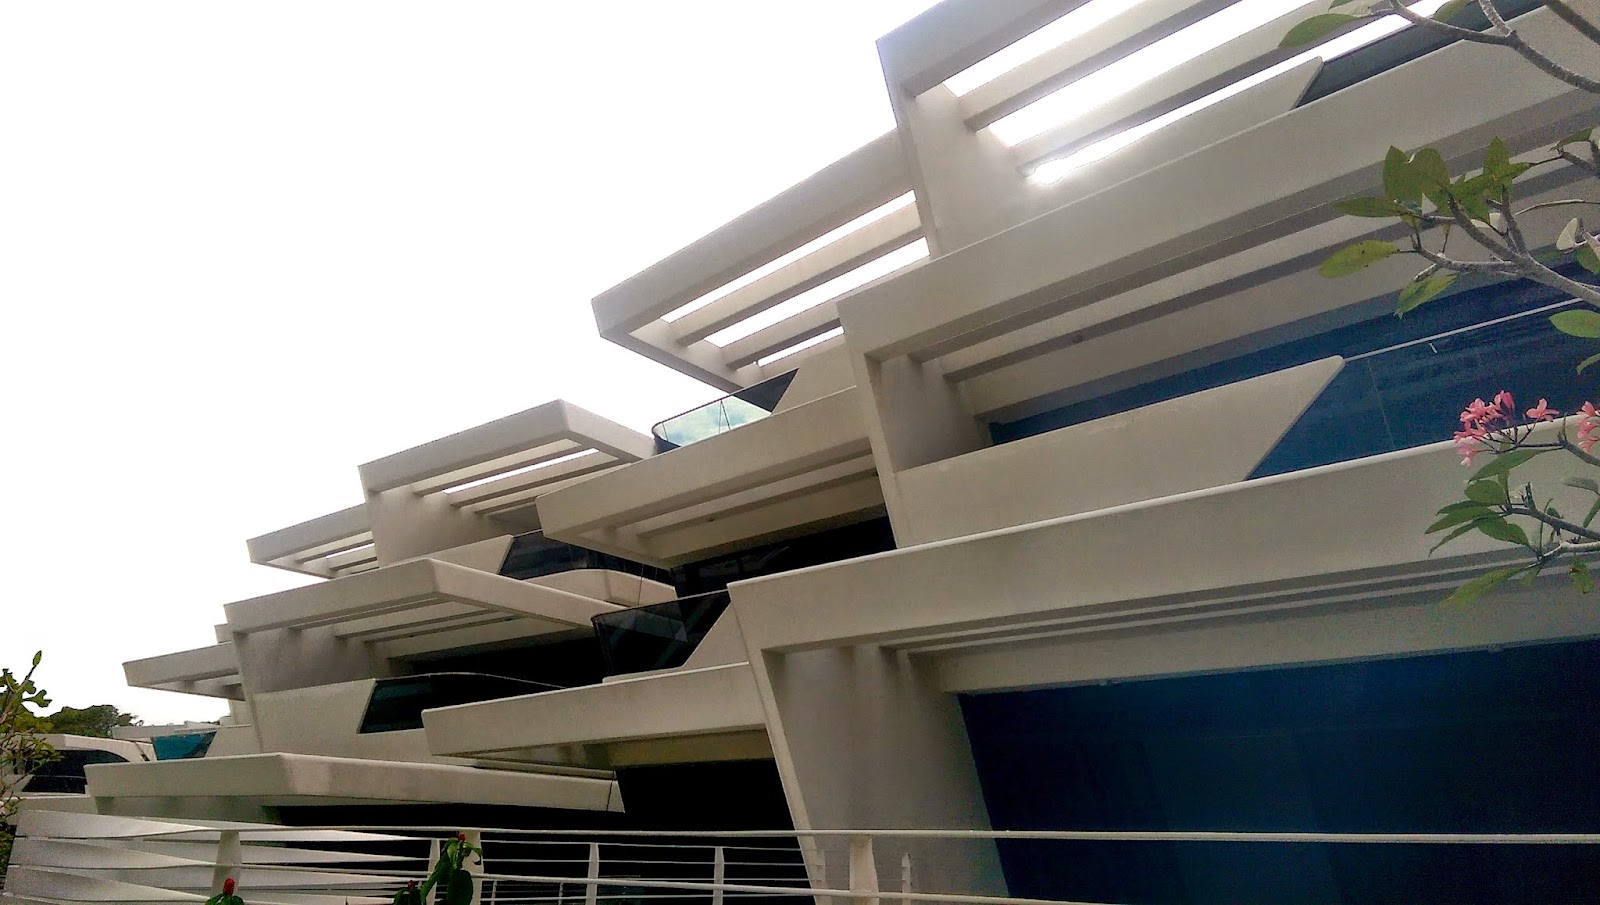 Garden villas at d leedon -  Many Of Zaha S Buildings In Europe And The Us Some Of Them Among The Most Stunning Buildings I Have Ever Seen I Was Not Expecting Much From D Leedon